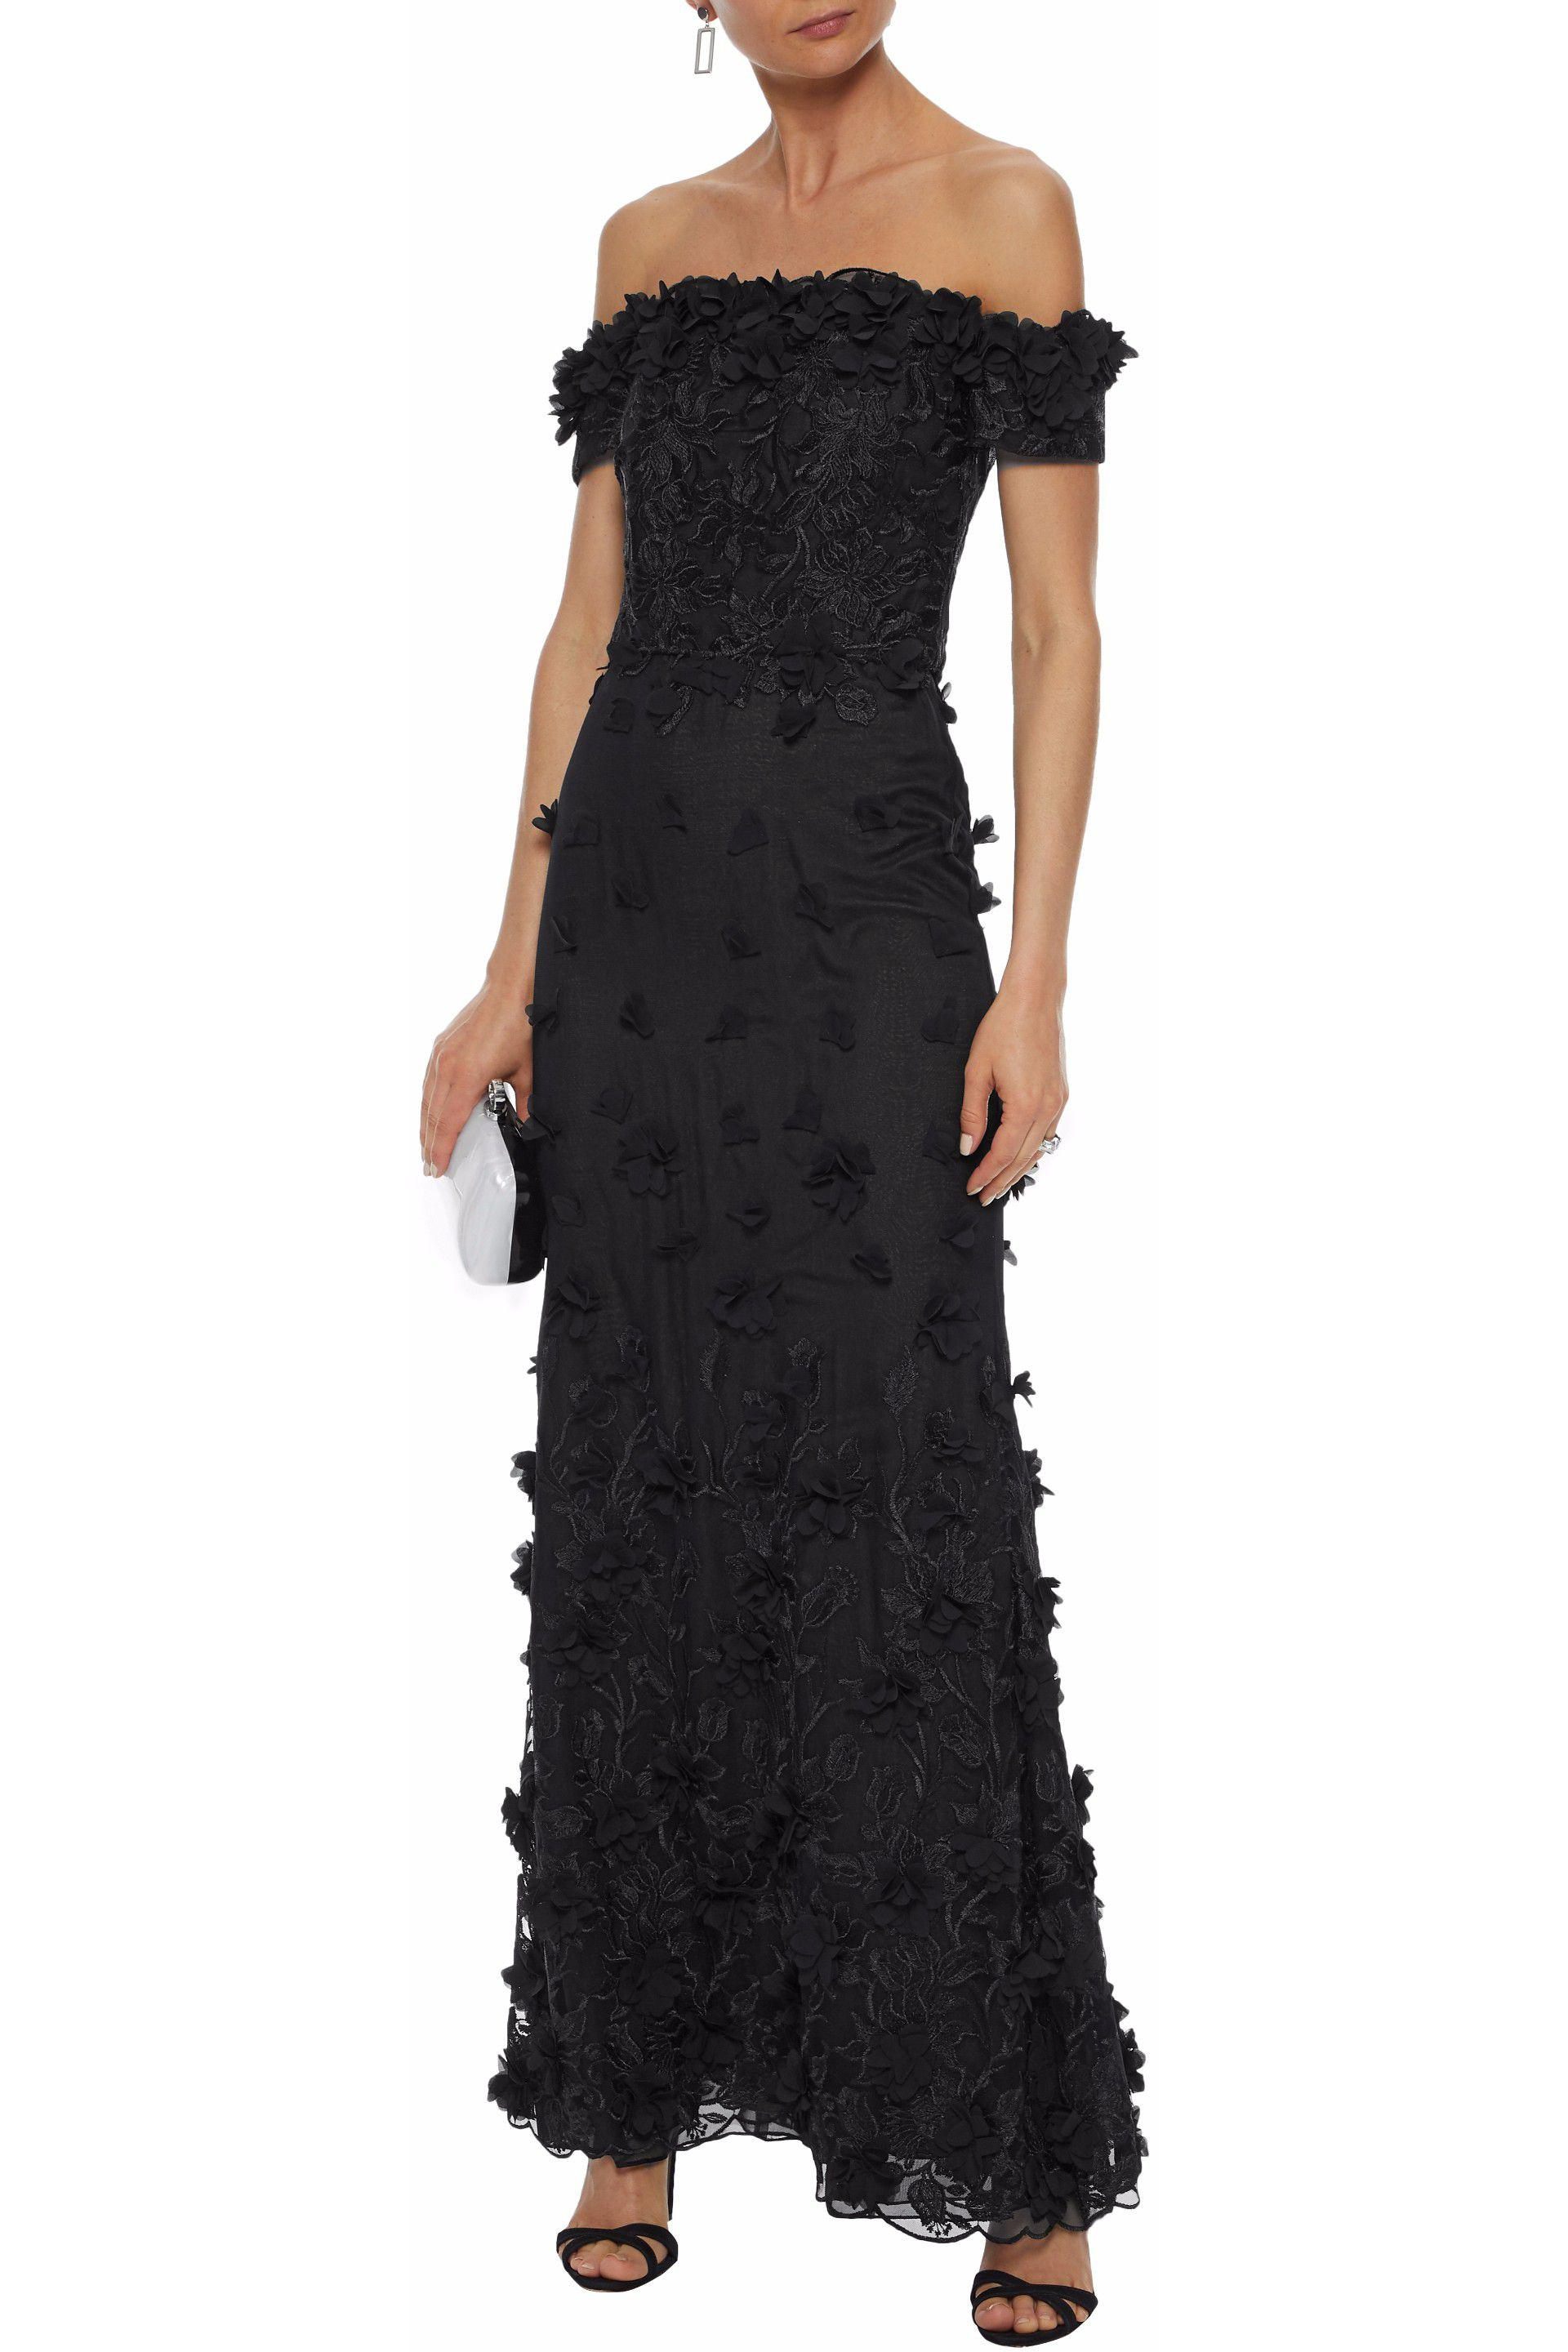 Off-the-shoulder Embellished Corded Lace And Tulle Gown - Black Marchesa Sale Recommend HsvahFUzv